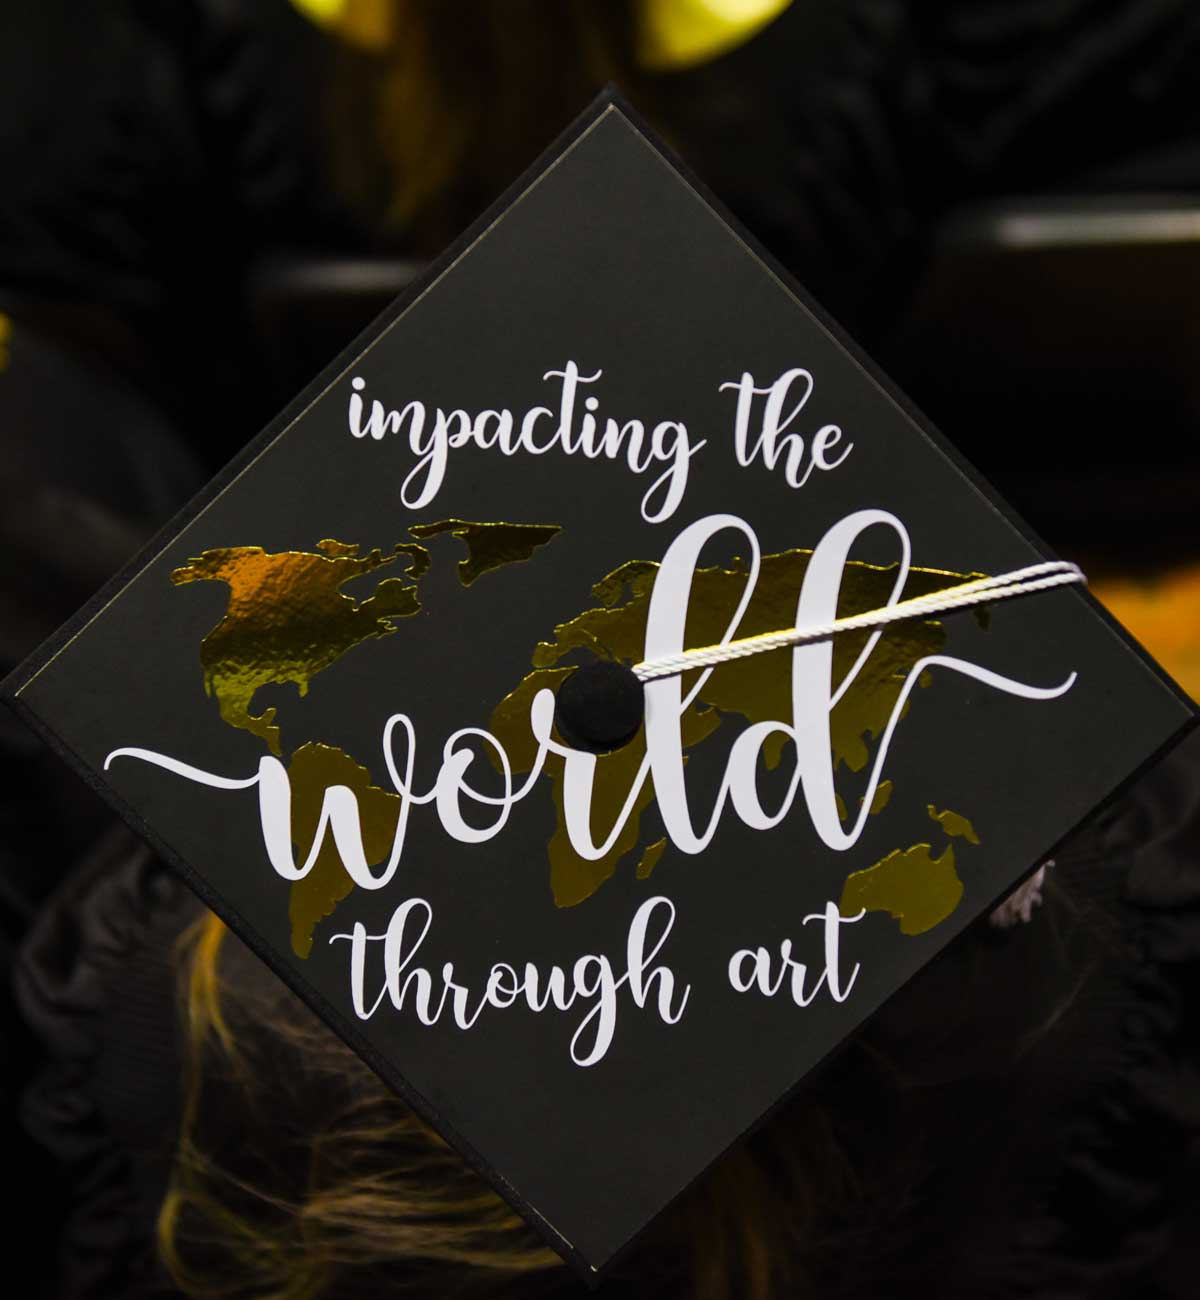 Grad cap decorated with text: Impacting the world through art